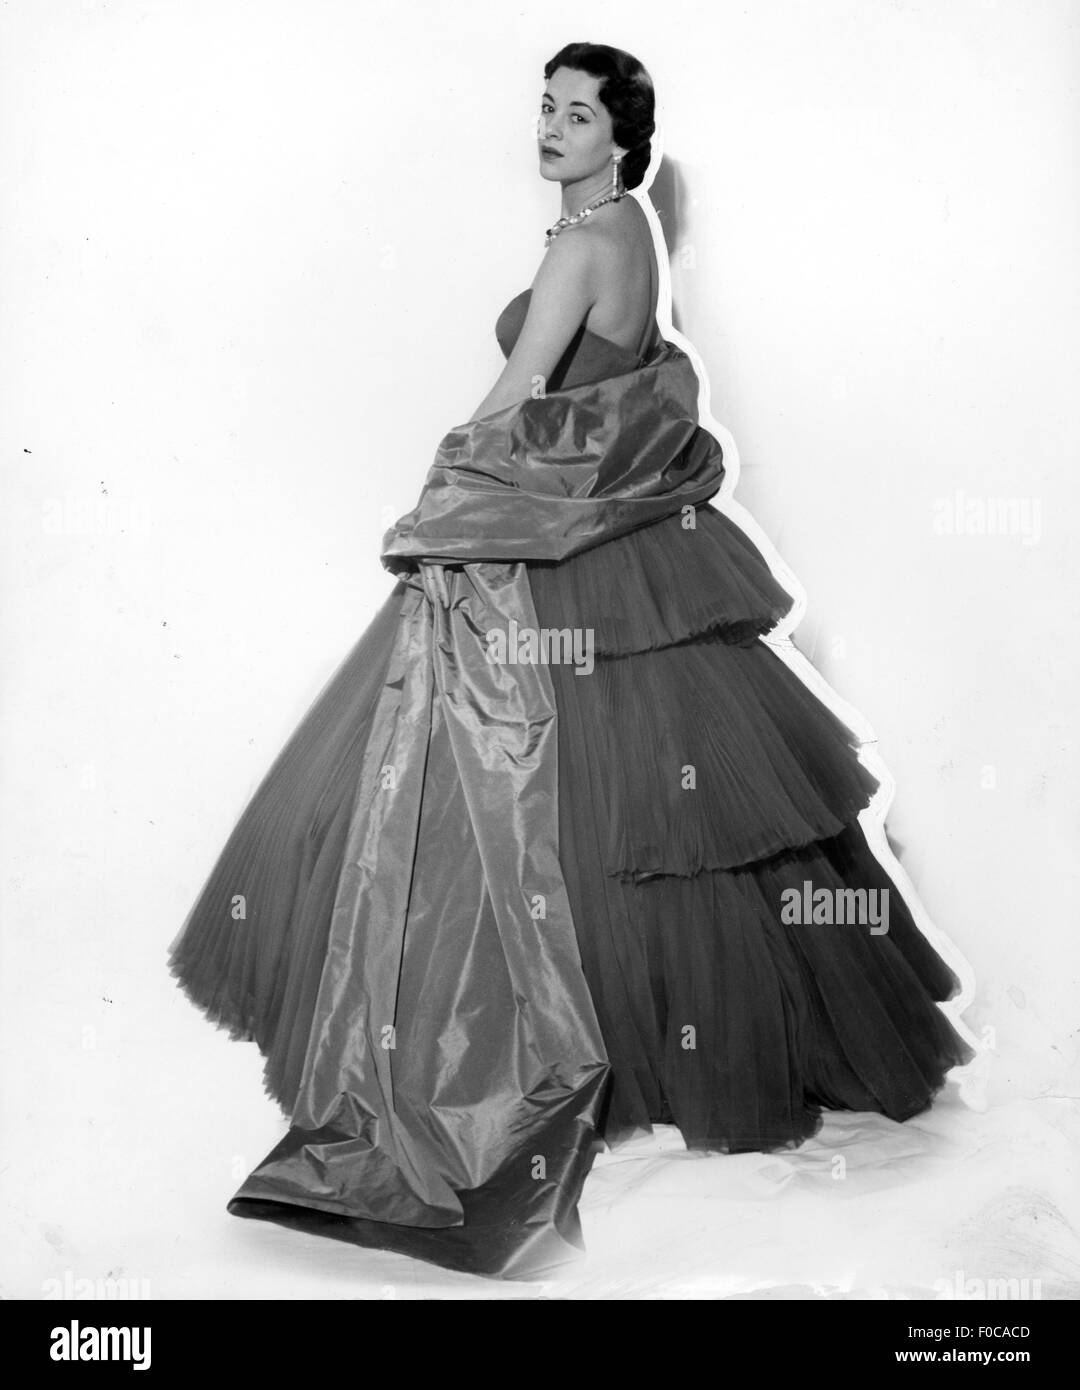 fashion, 1950s, evening fashion, woman in strapless evening dress with stole by 'Veneziani', Milan, 1951, - Stock Image